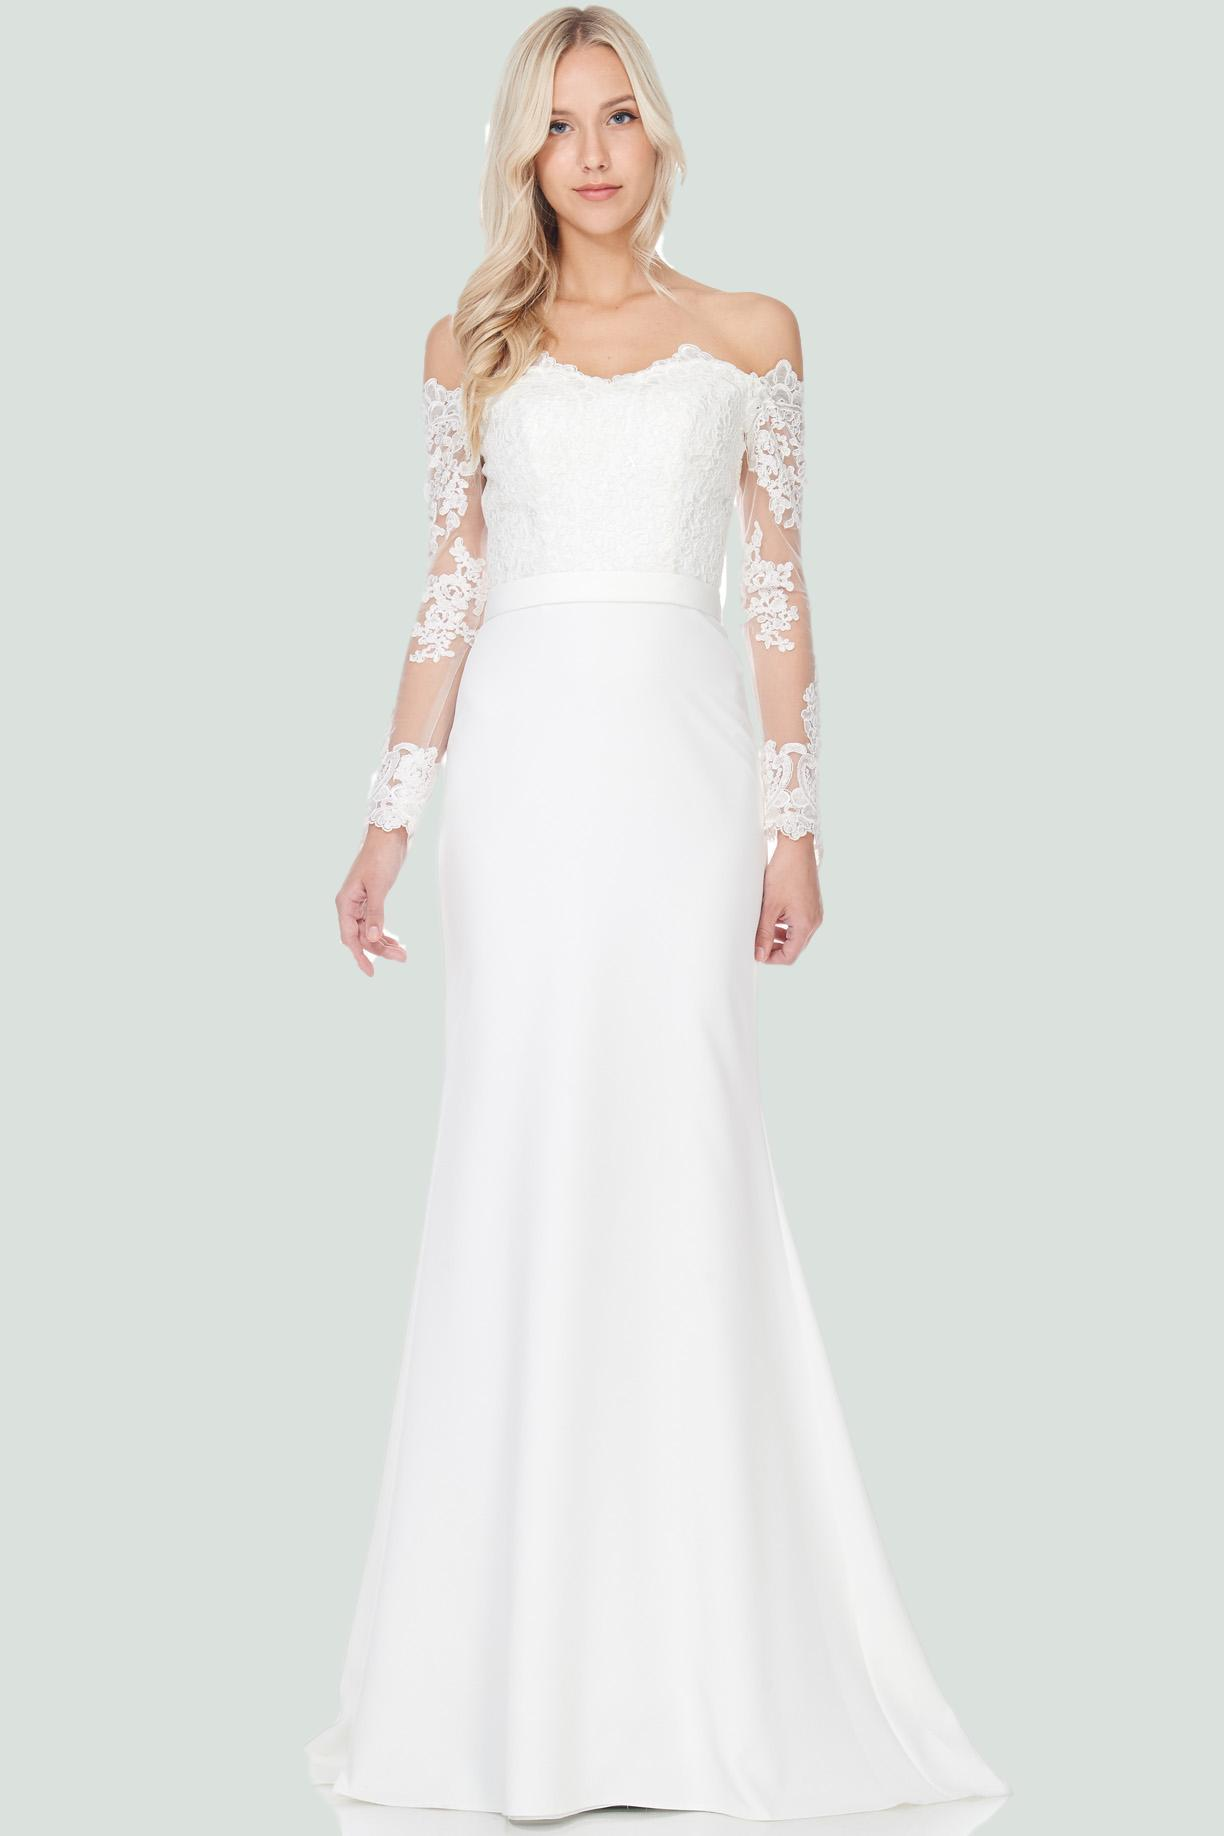 ... Elegant Simple Long Sleeve Lace Wedding Dress   Simply Fab Dress ...